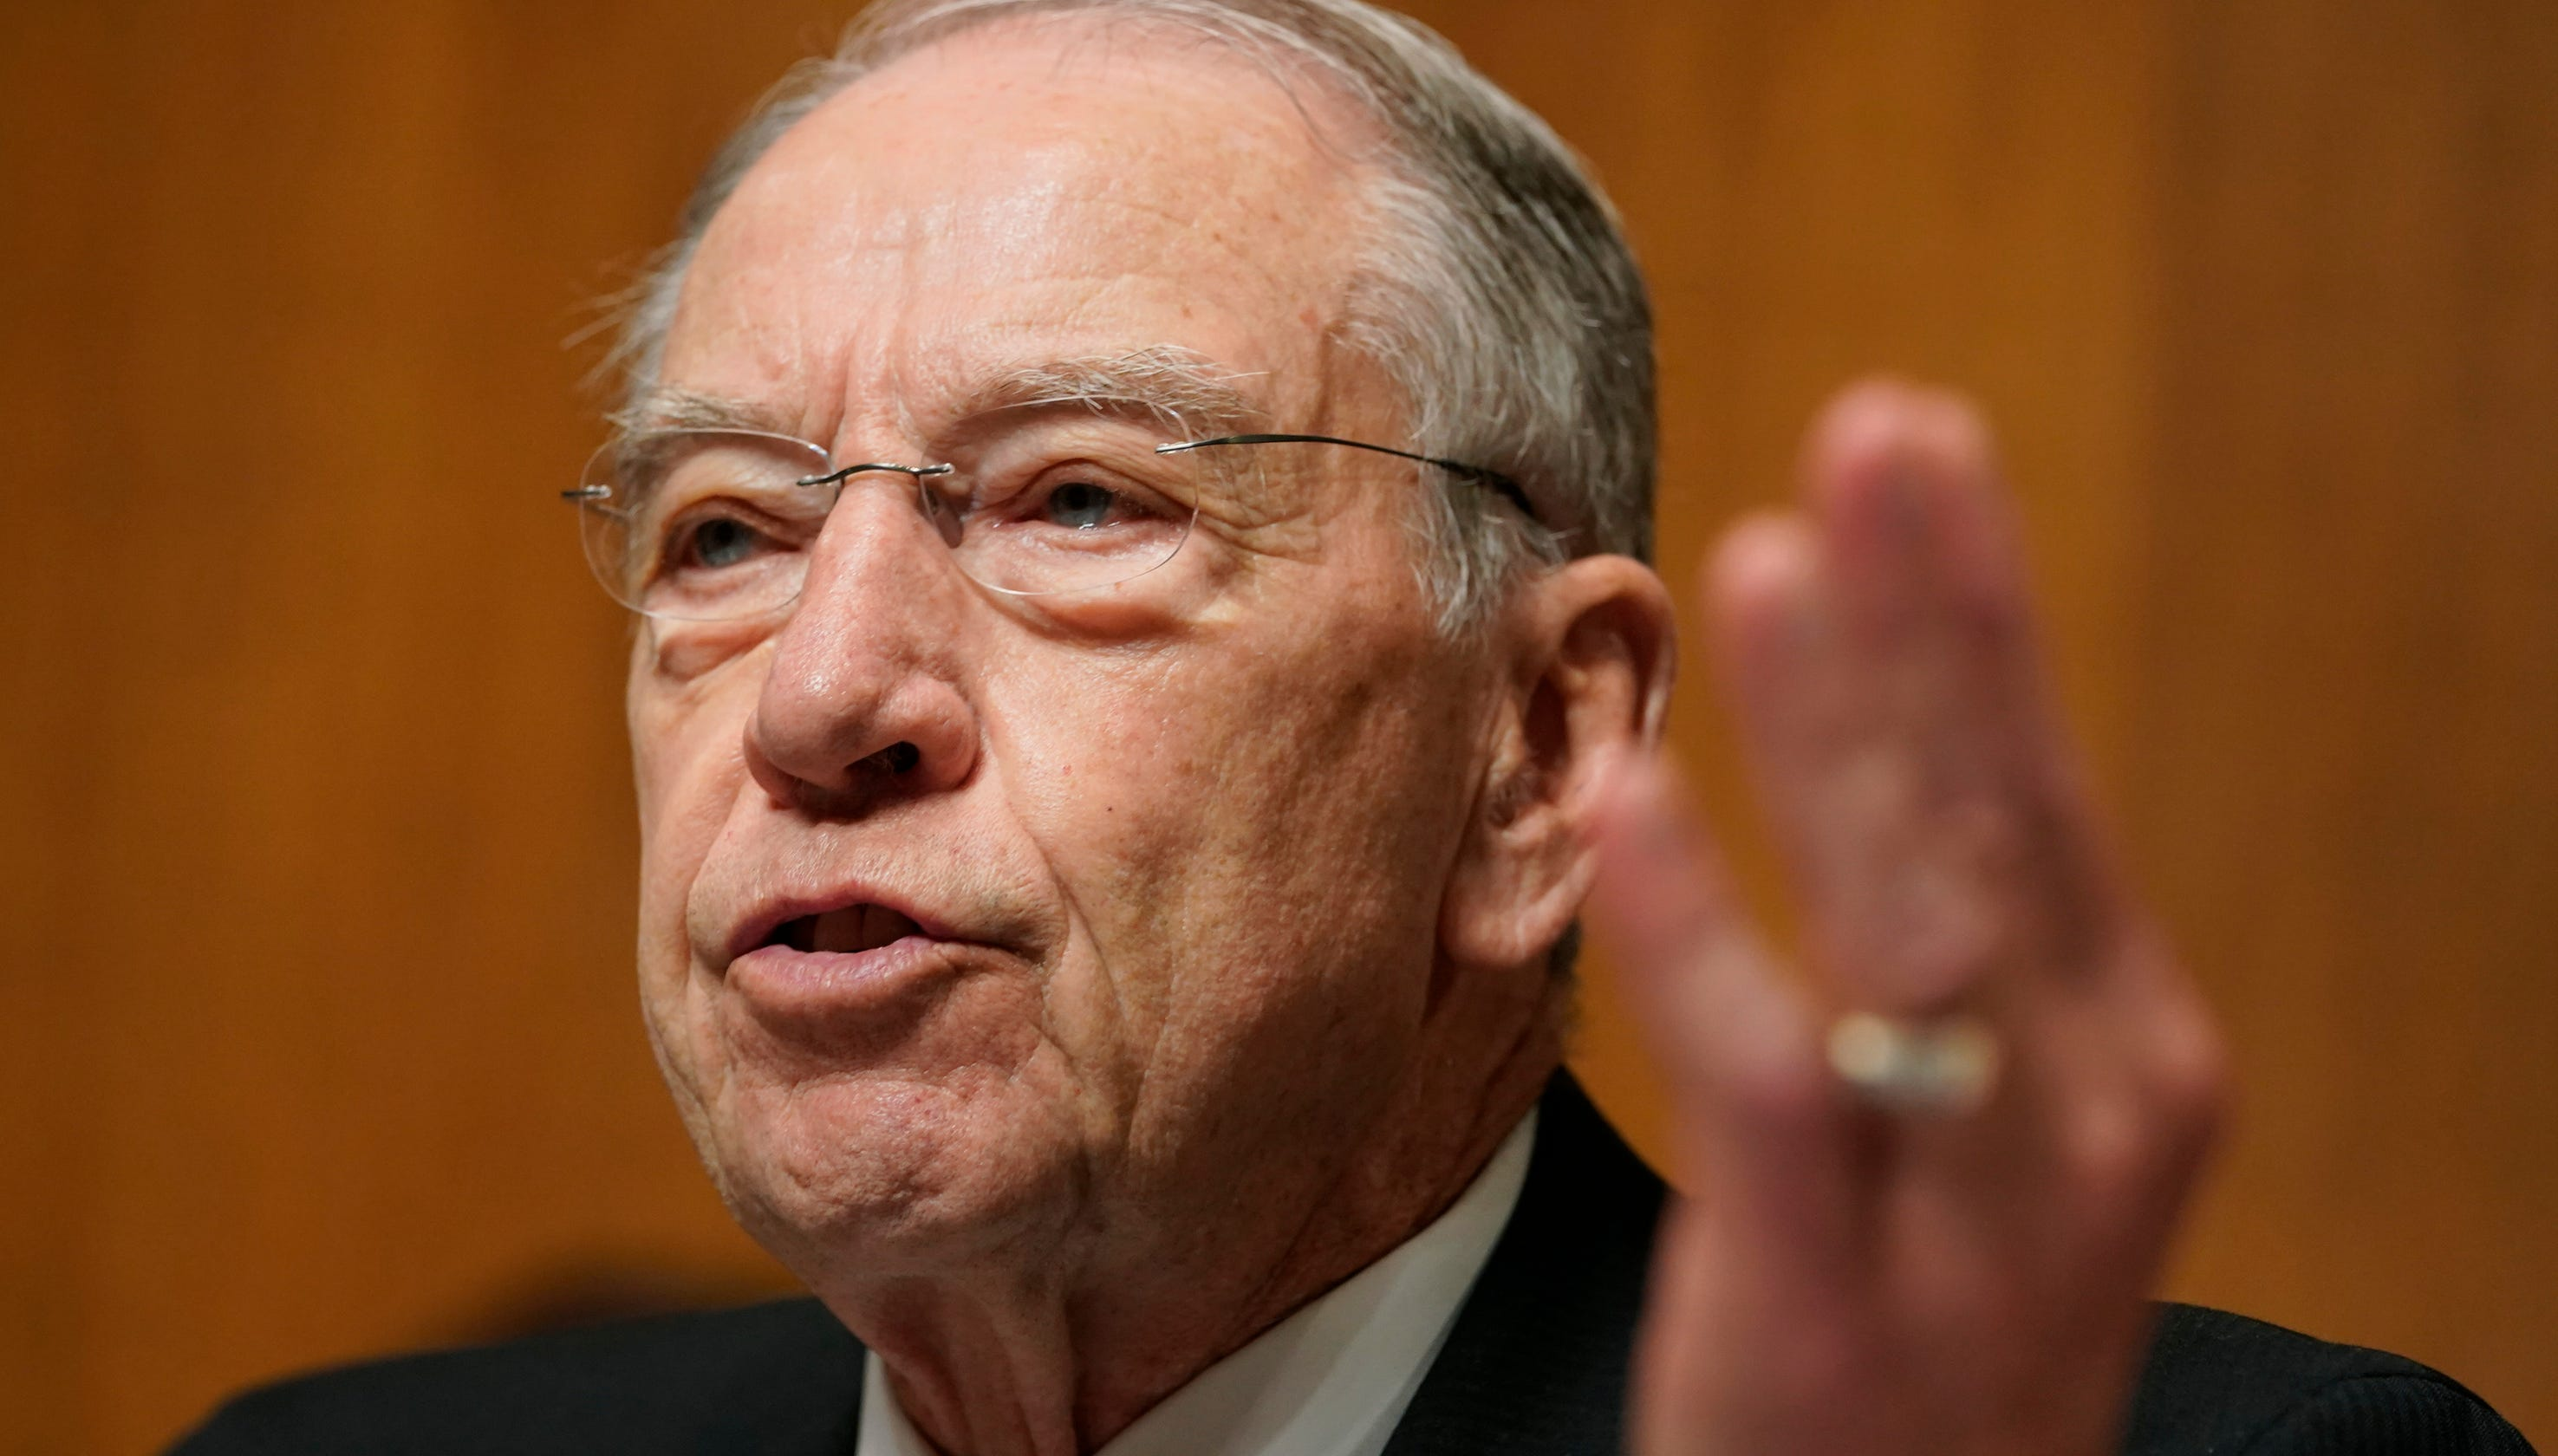 Sen. Chuck Grassley gives up Senate Judiciary chair to head Finance Committee